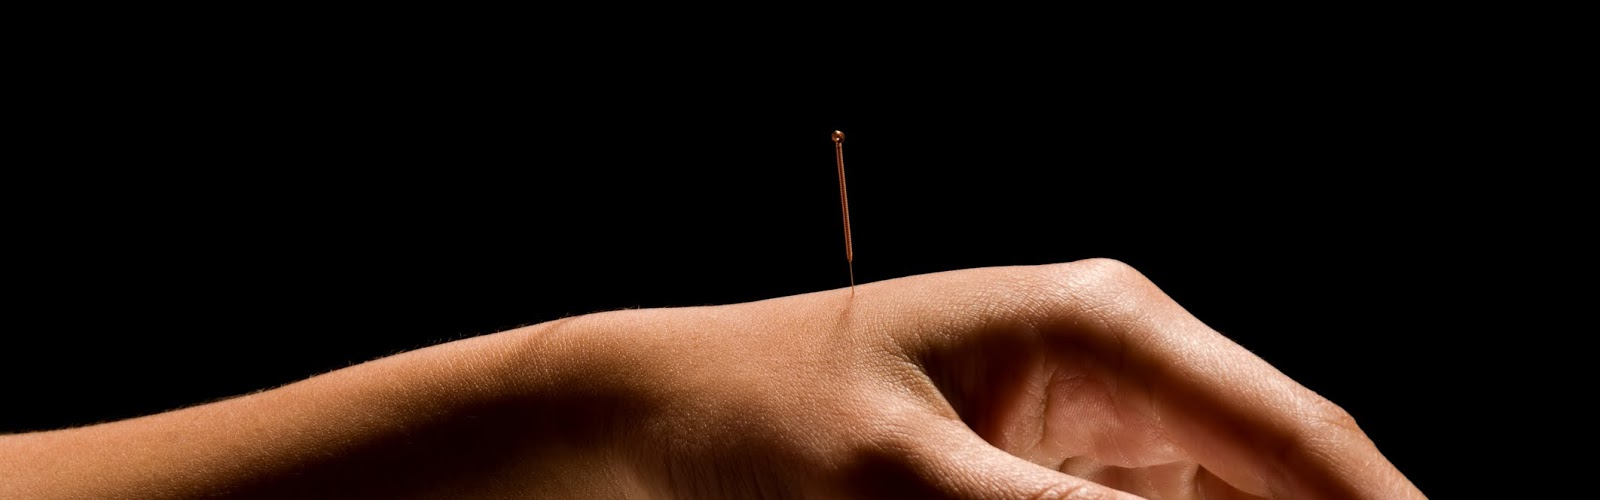 an acupuncture needle in a handle